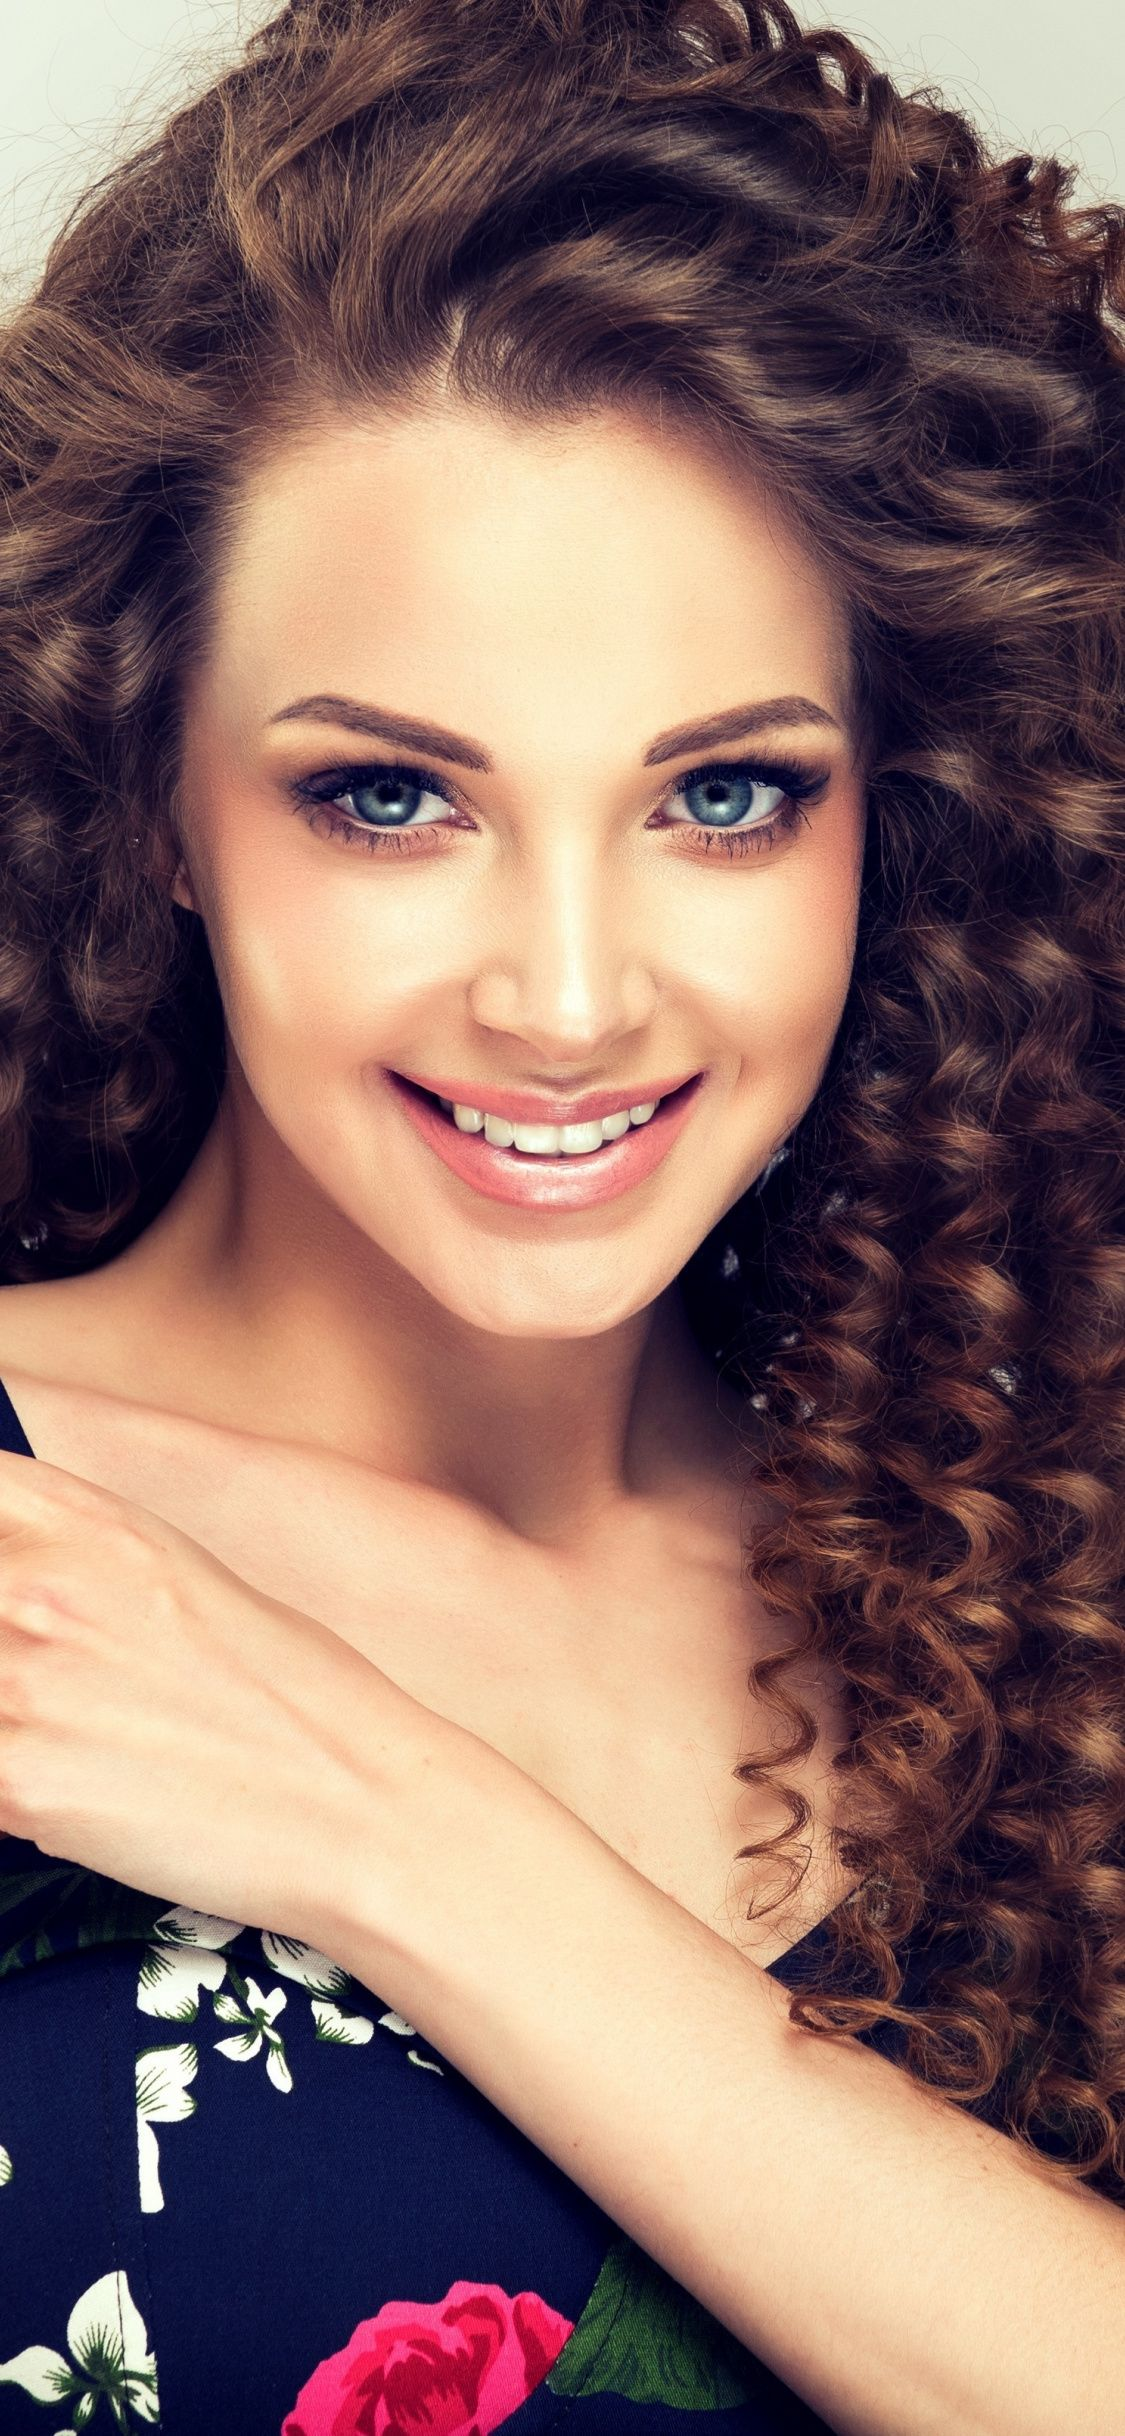 Smile Woman Model Curly Hair Brunette 1125x2436 Wallpaper Curly Hair Styles Beautiful Women Faces Hair Beauty